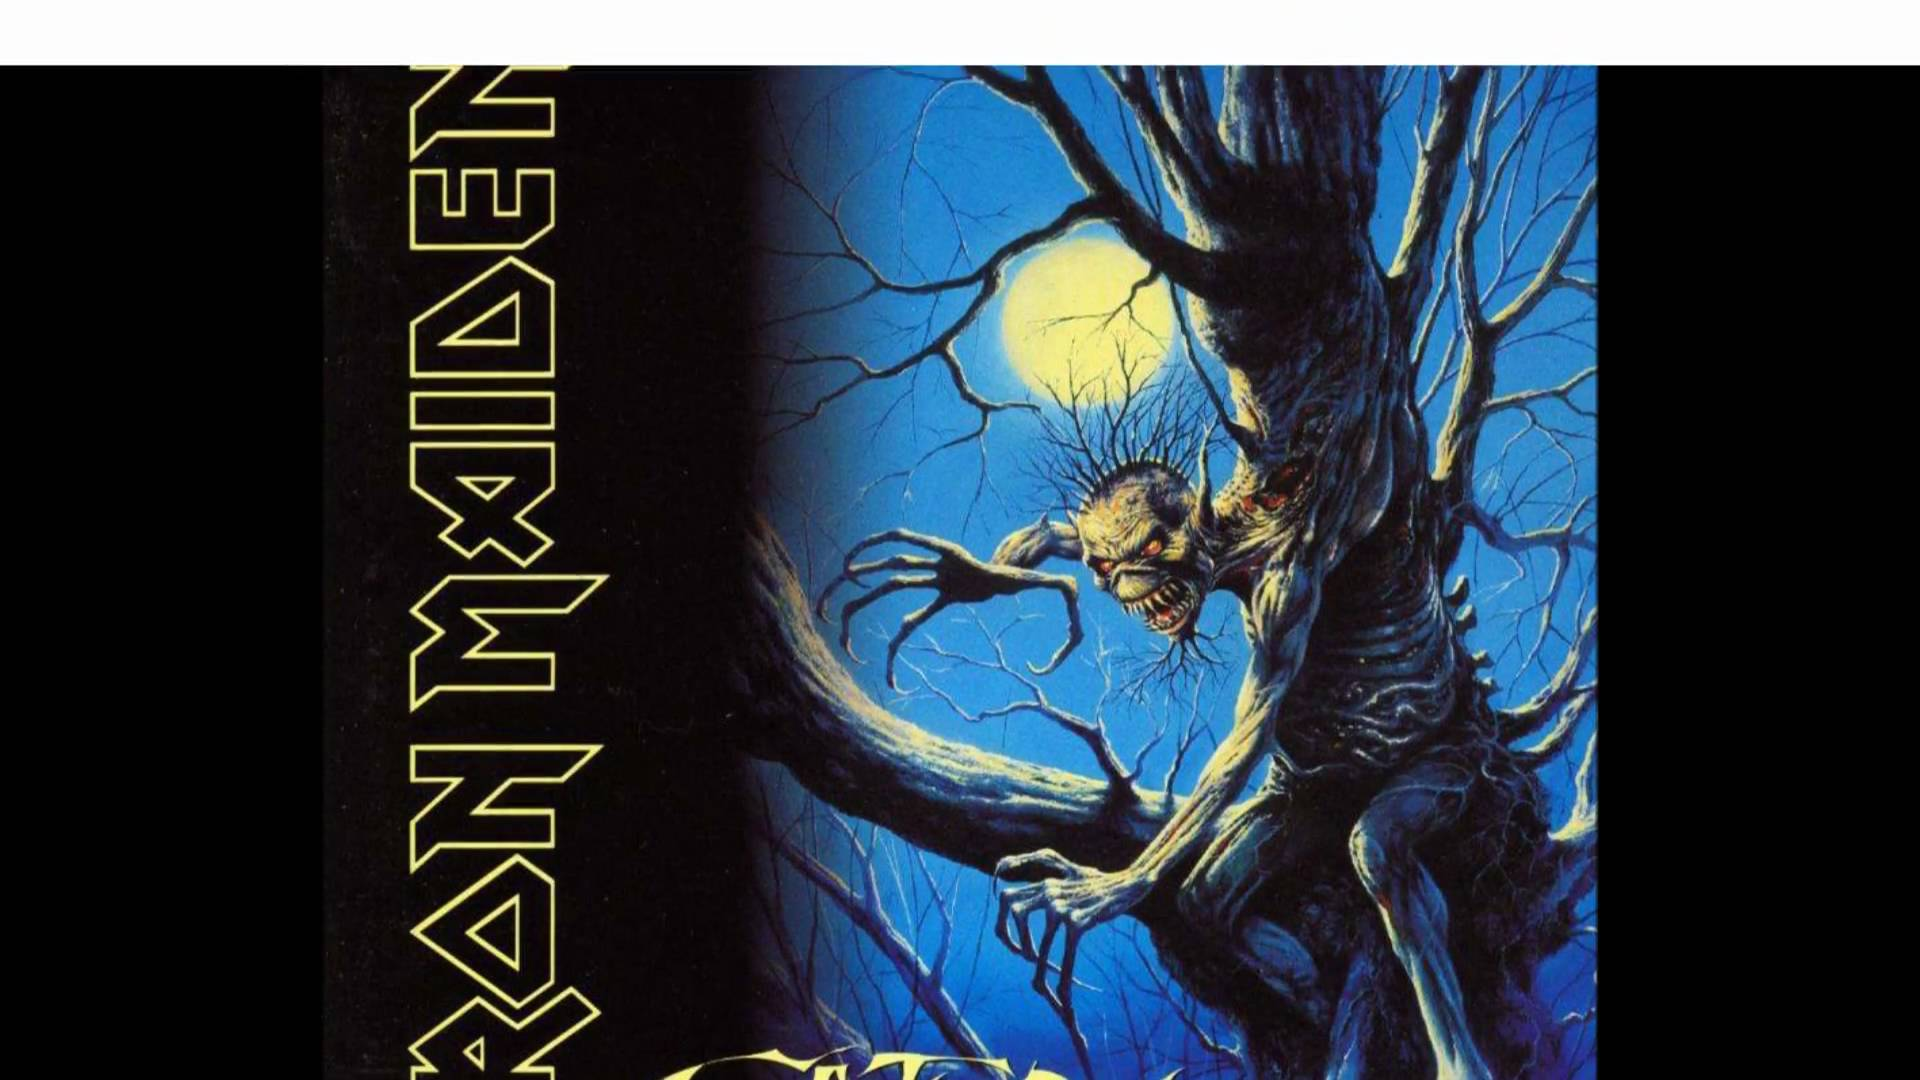 Iron Maiden Wallpaper 1920x1080 Posted By Ethan Peltier